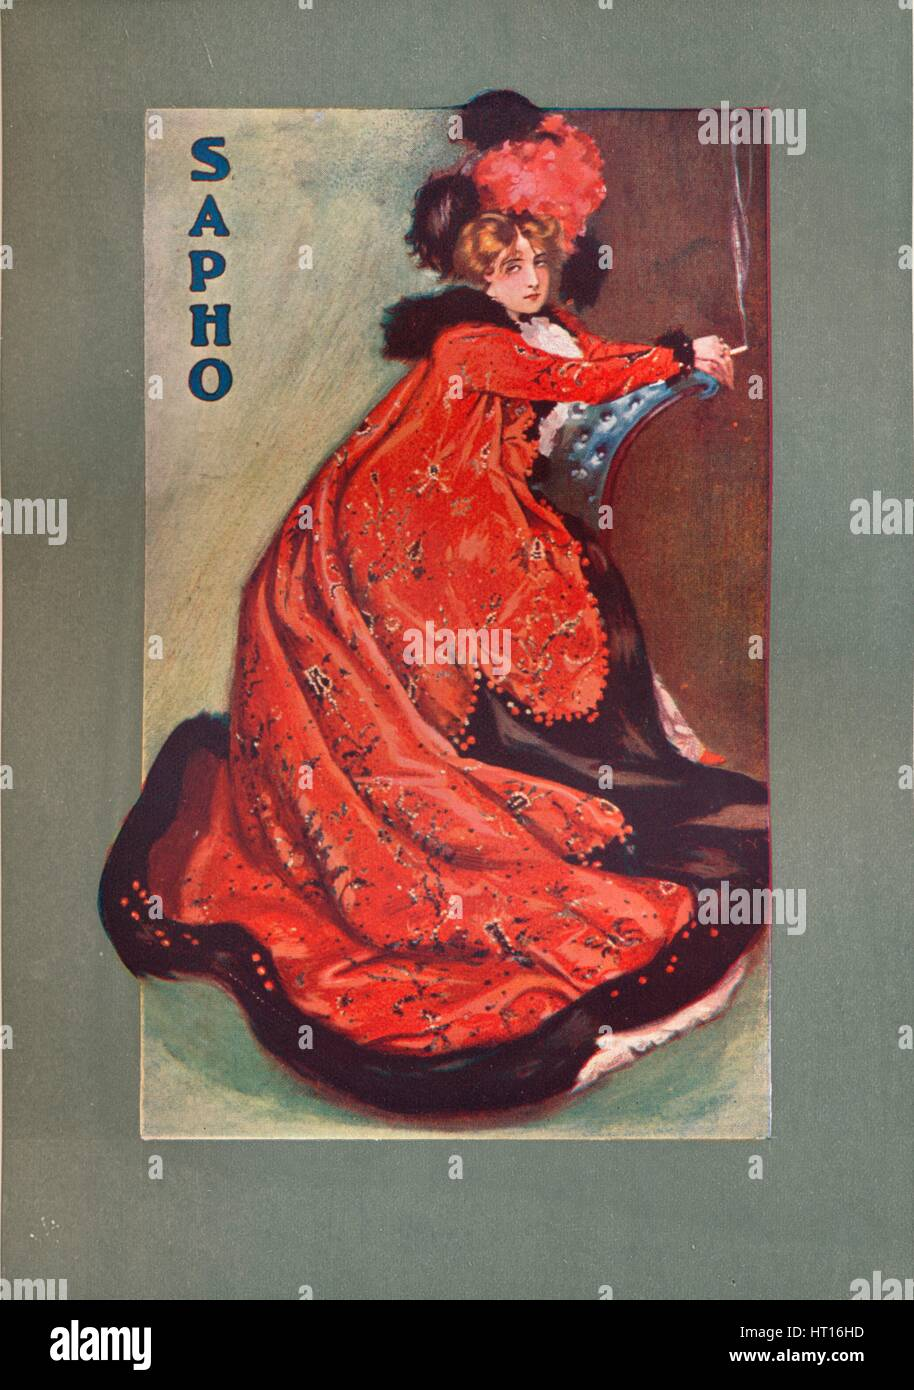 'Mrs Olga Nethersole in ''Sapho''', c1900. Artist: Unknown. Stock Photo